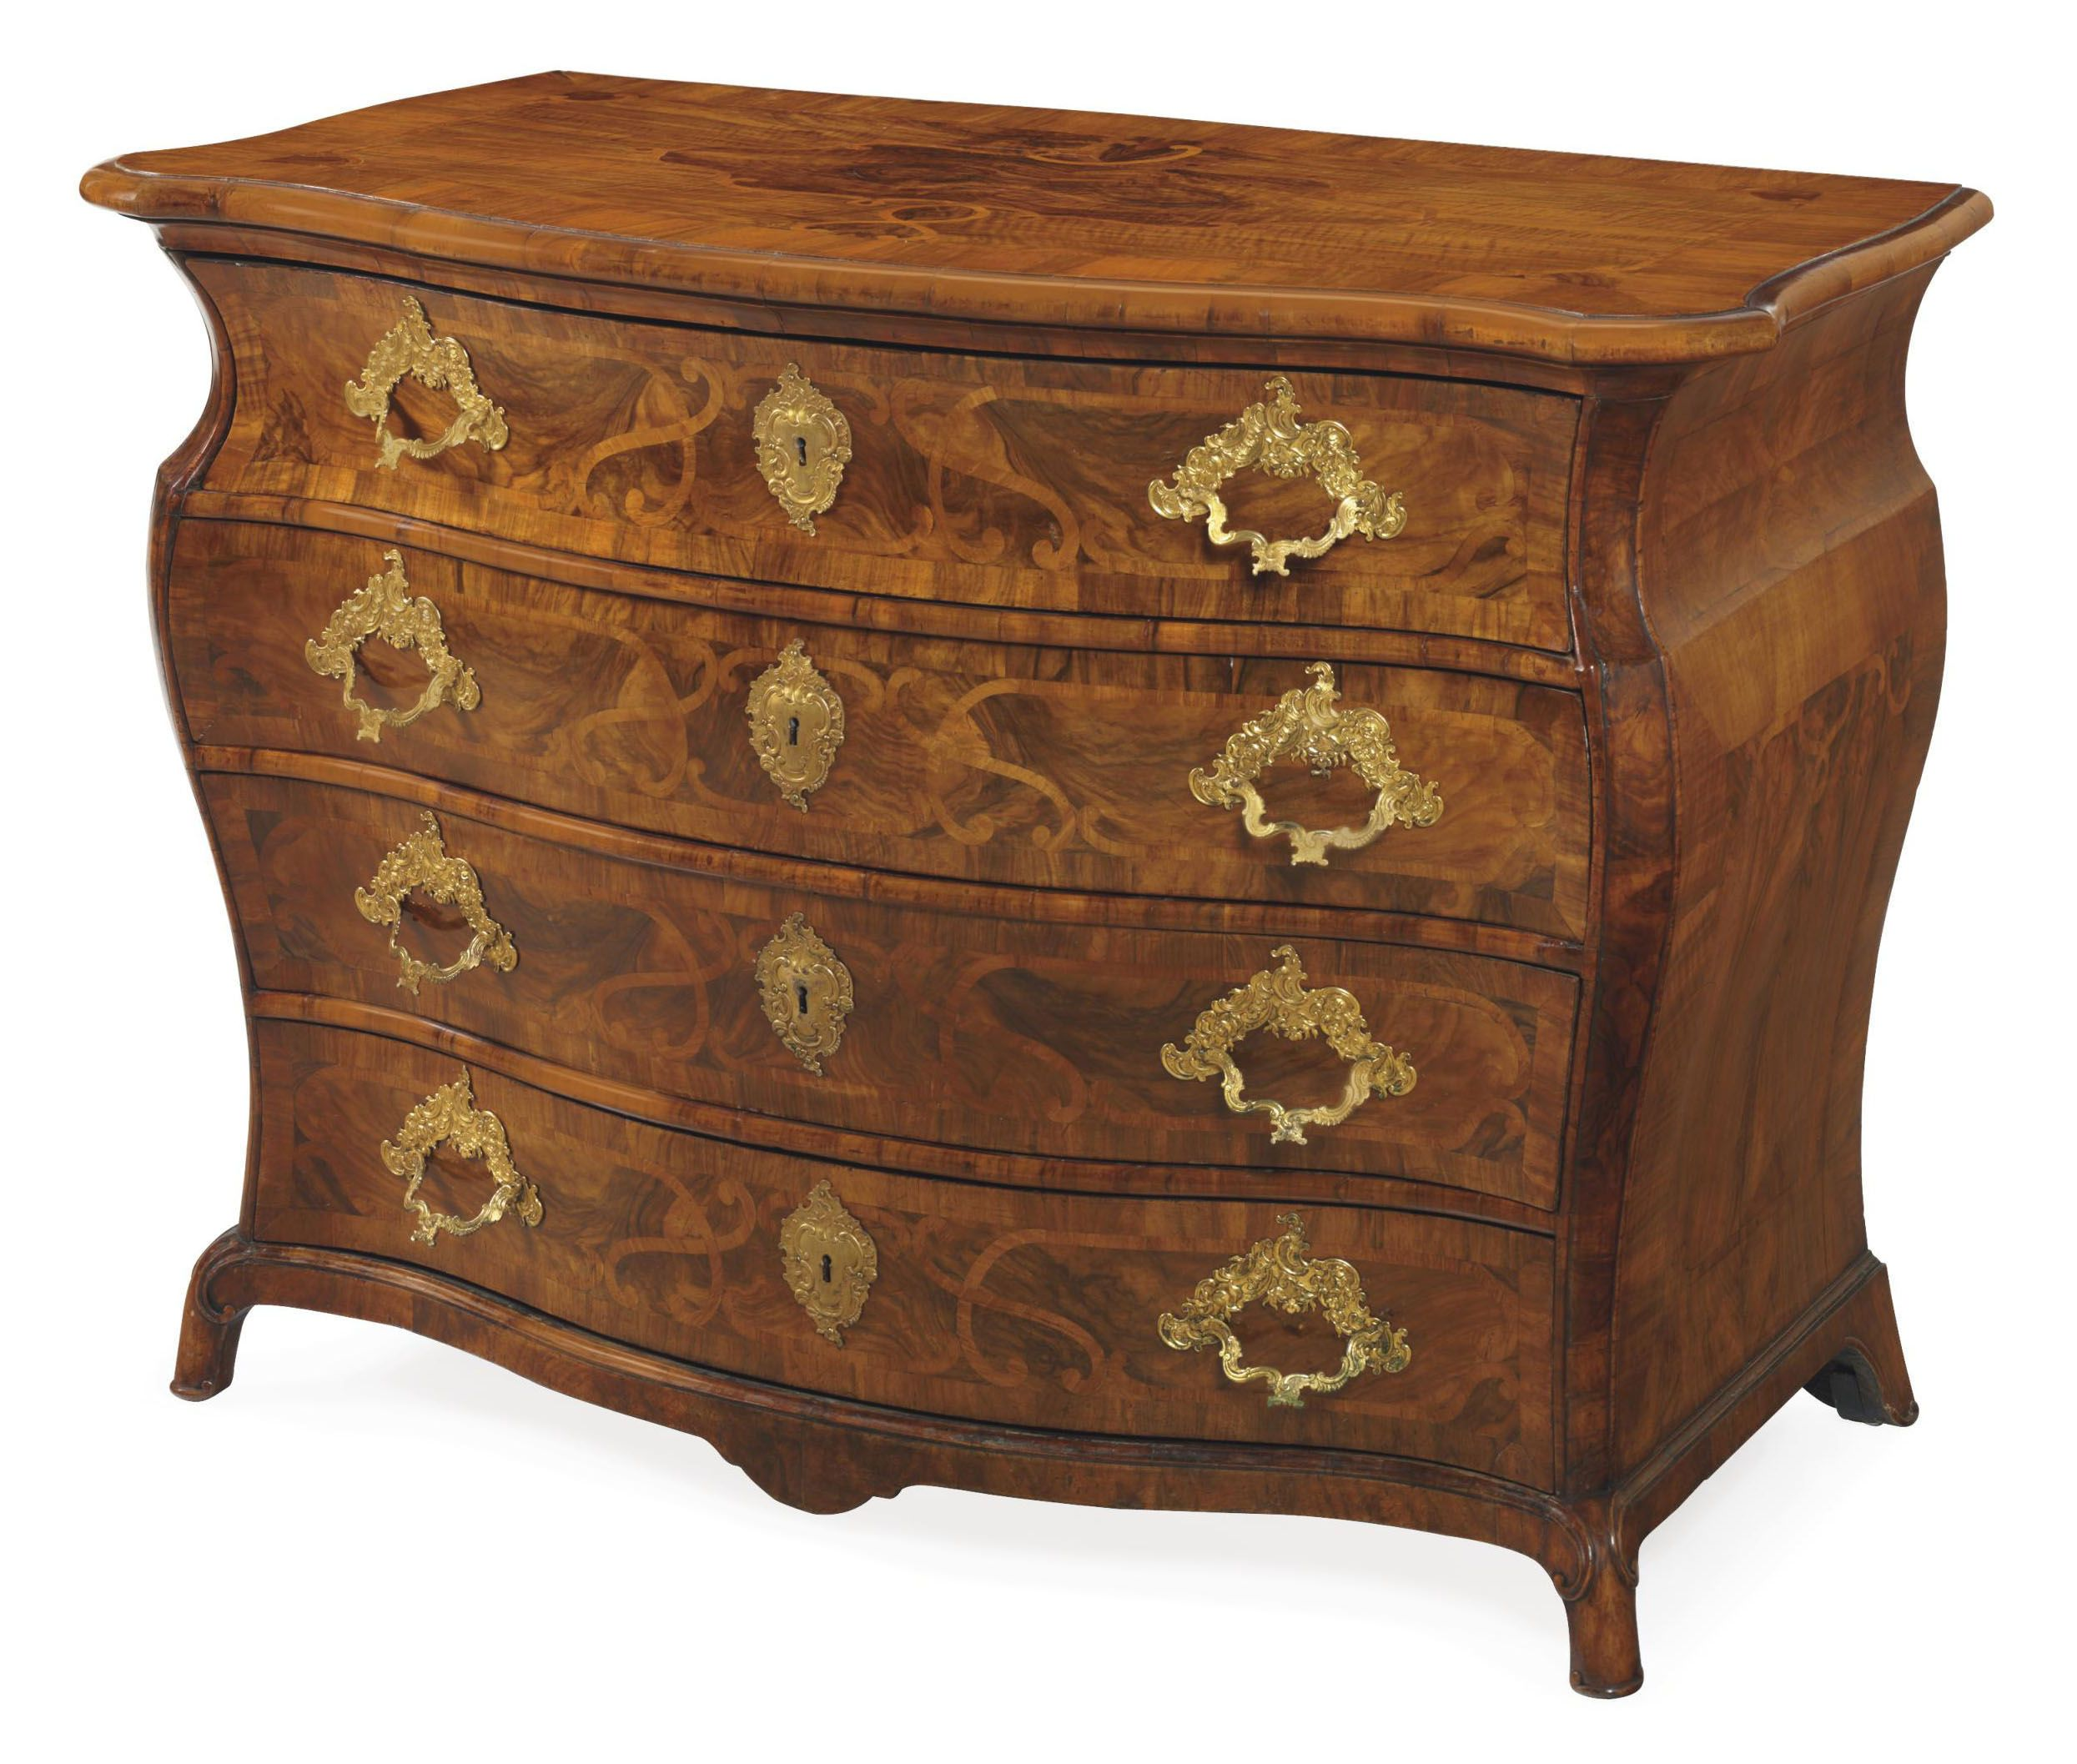 Möbel Bayreuth C1760 A German Walnut And Marquetry Commode Bayreuth Or Berlin